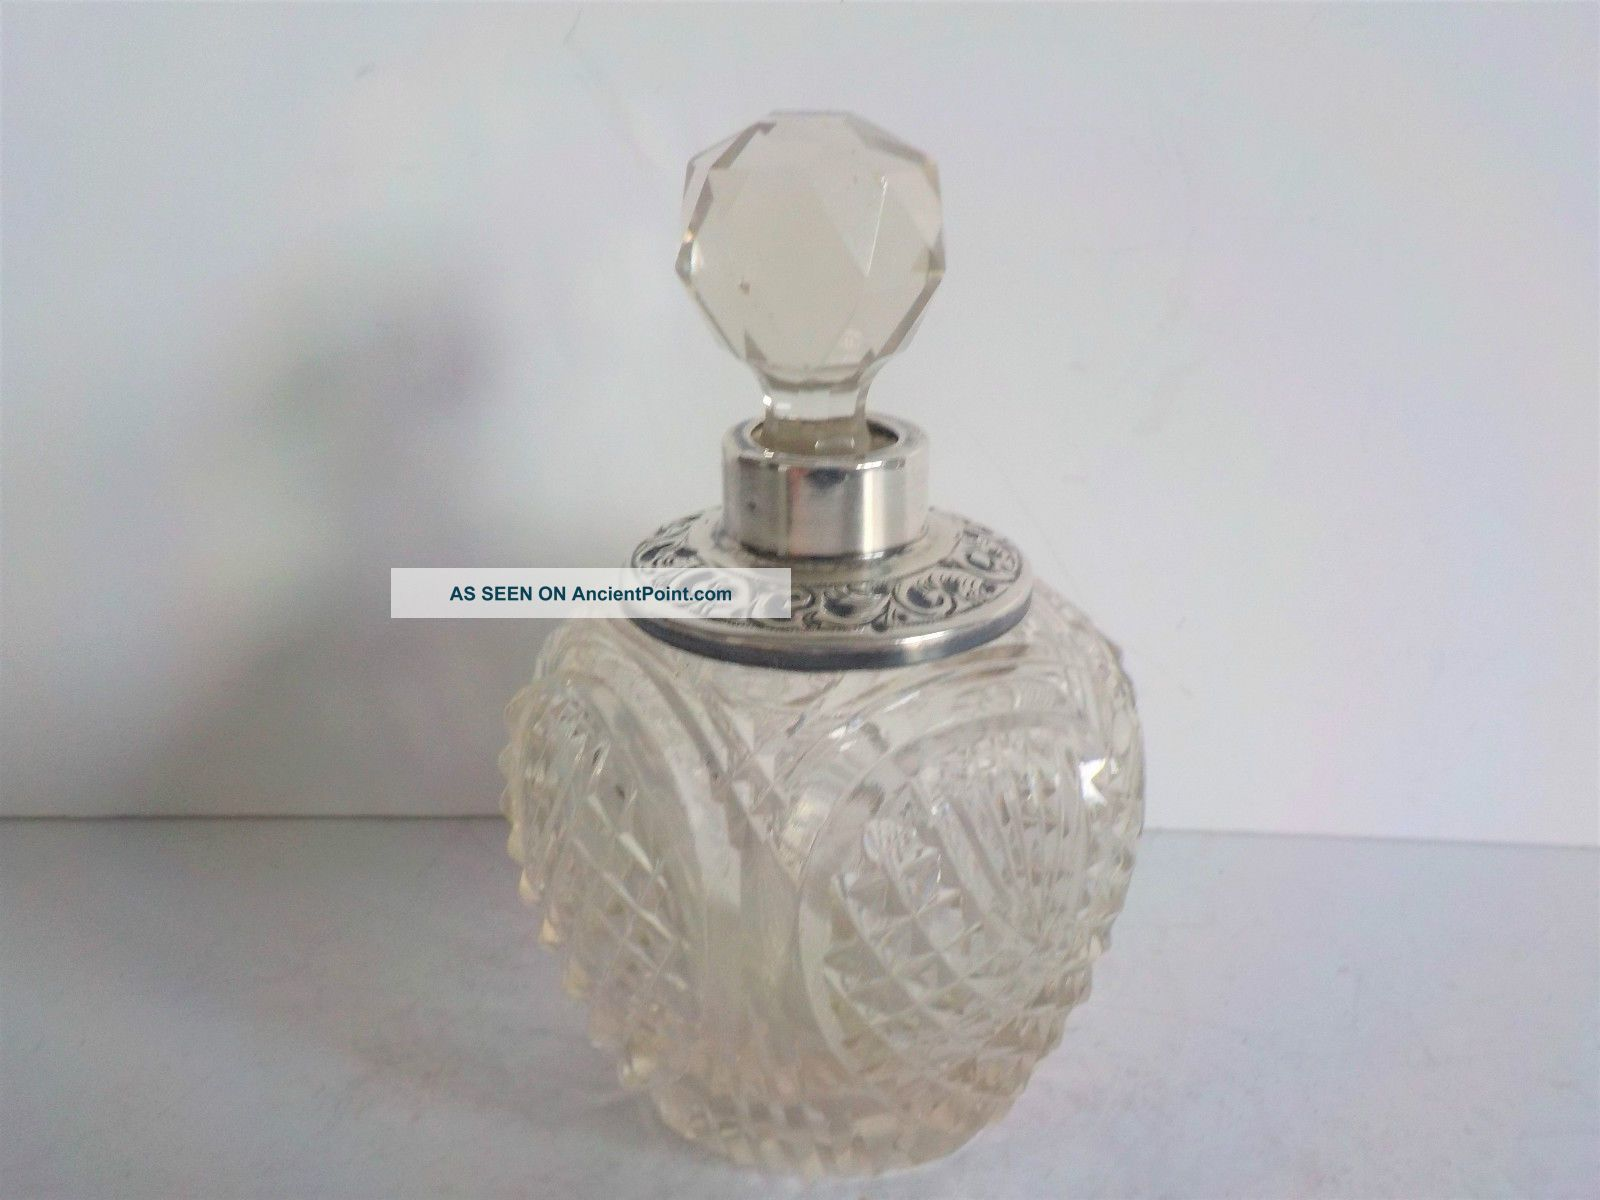 Antique Sterling Silver Perfume Bottle Henry Perkins & Sons London 1909 C Bottles photo